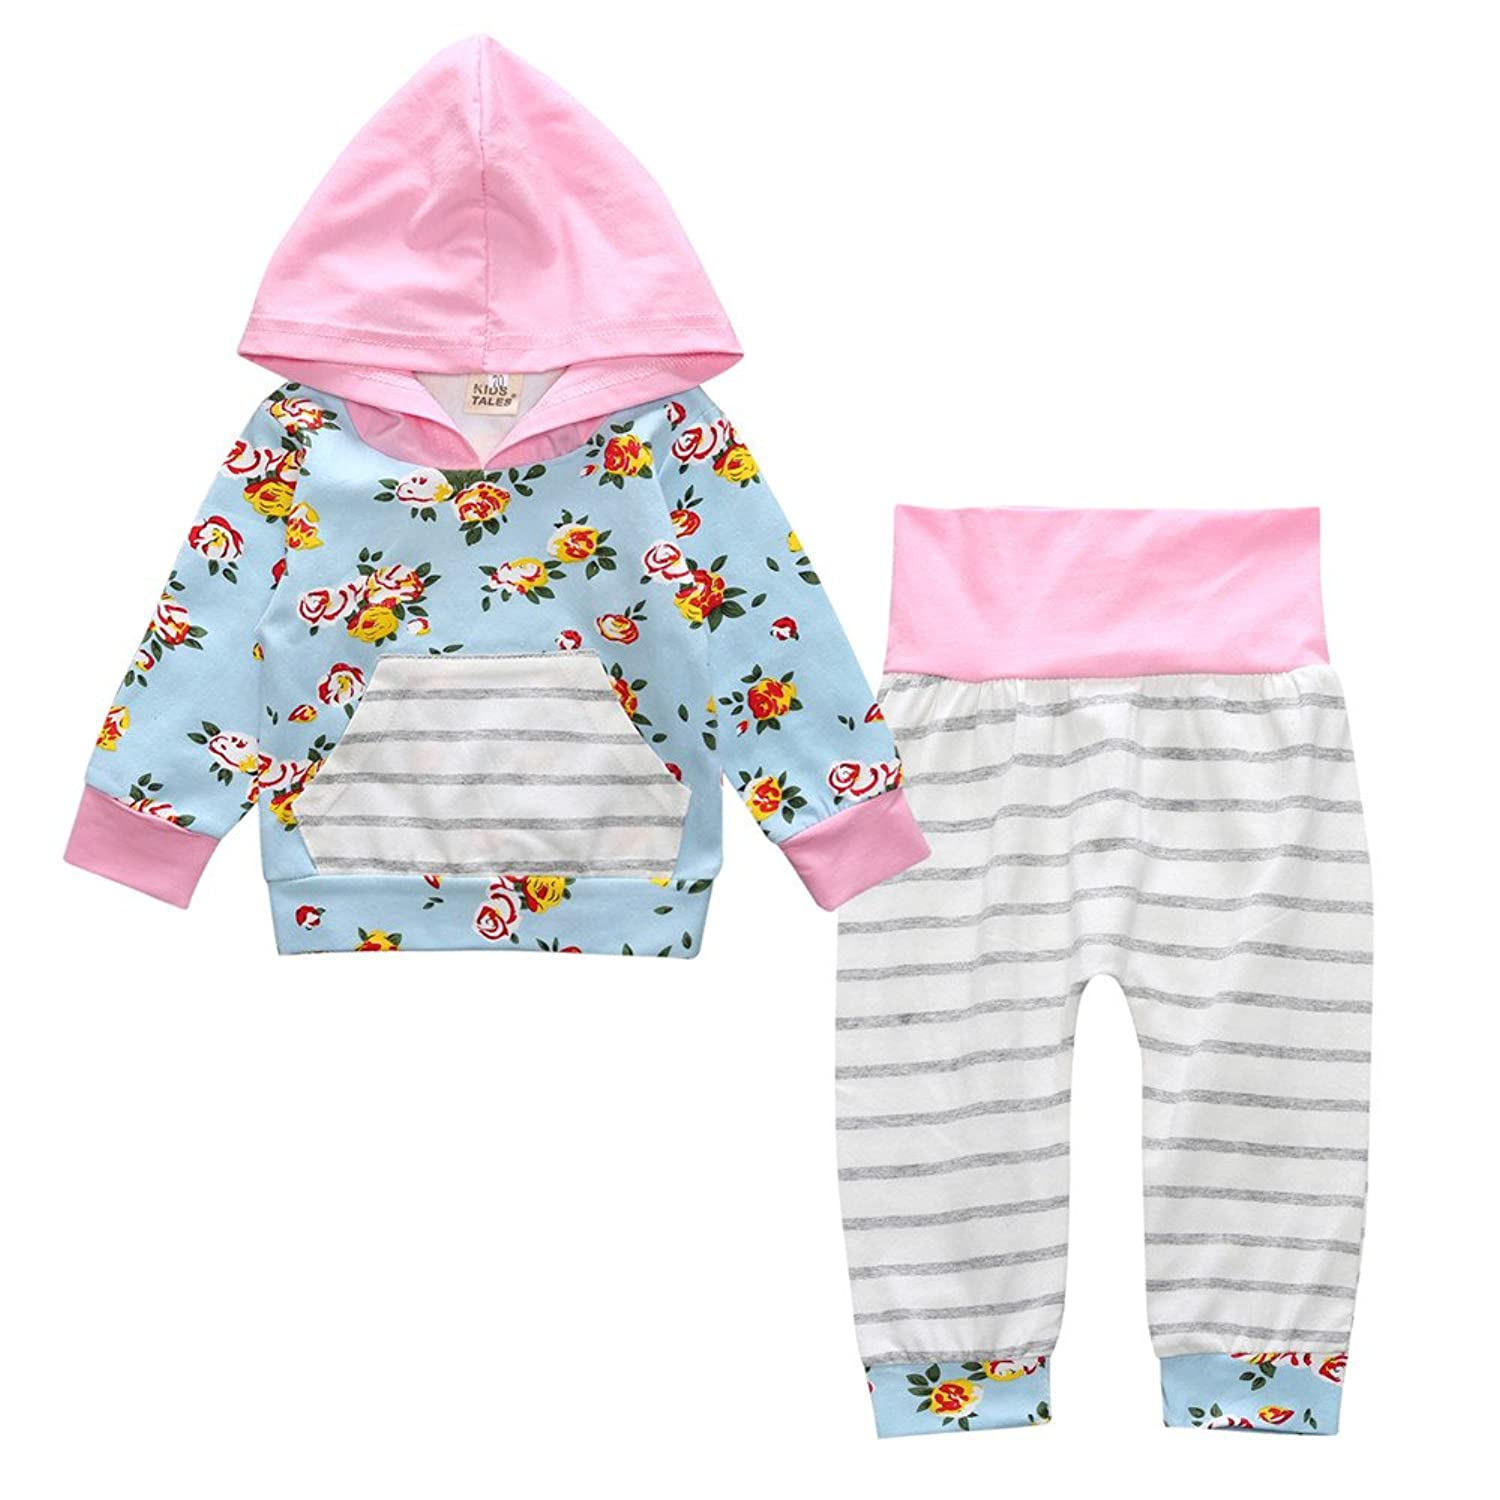 7a4910773562e Soft,comfortable,good air permeability,cute and fashion,no any harm to your  baby\'s skin. Floral pattern full of little girls fashion,suitable for  spring ...